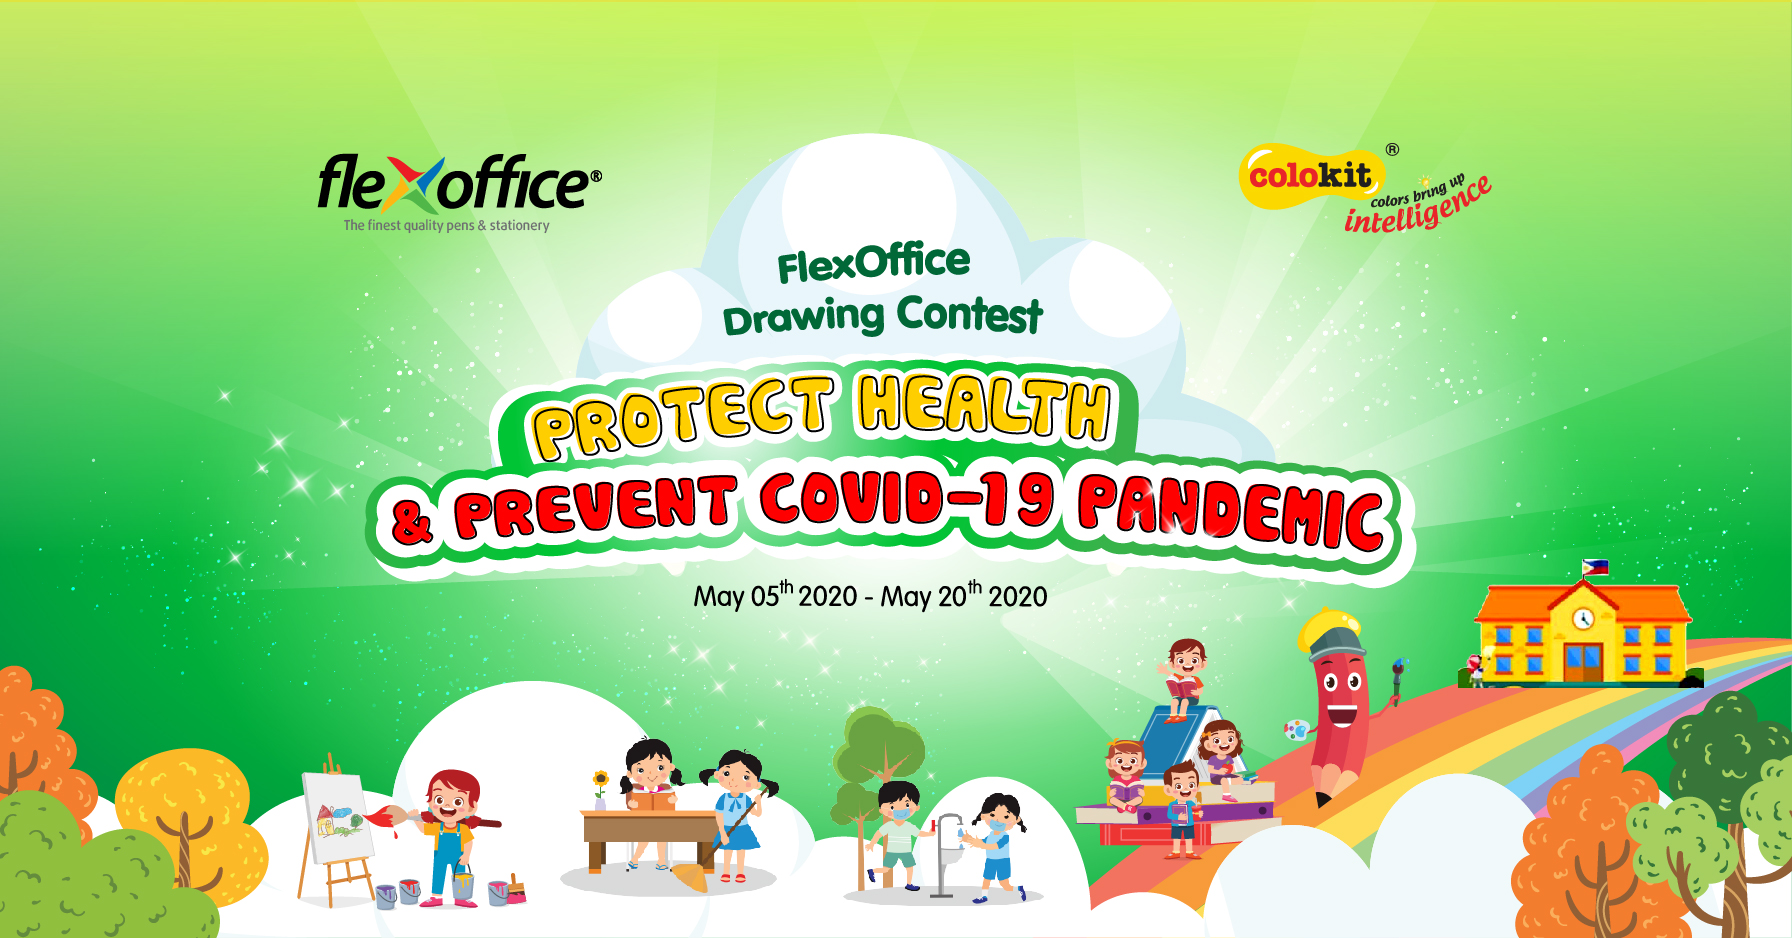 THE 2020 FLEXOFFICE DRAWING CONTEST IN THE PHILIPPINES